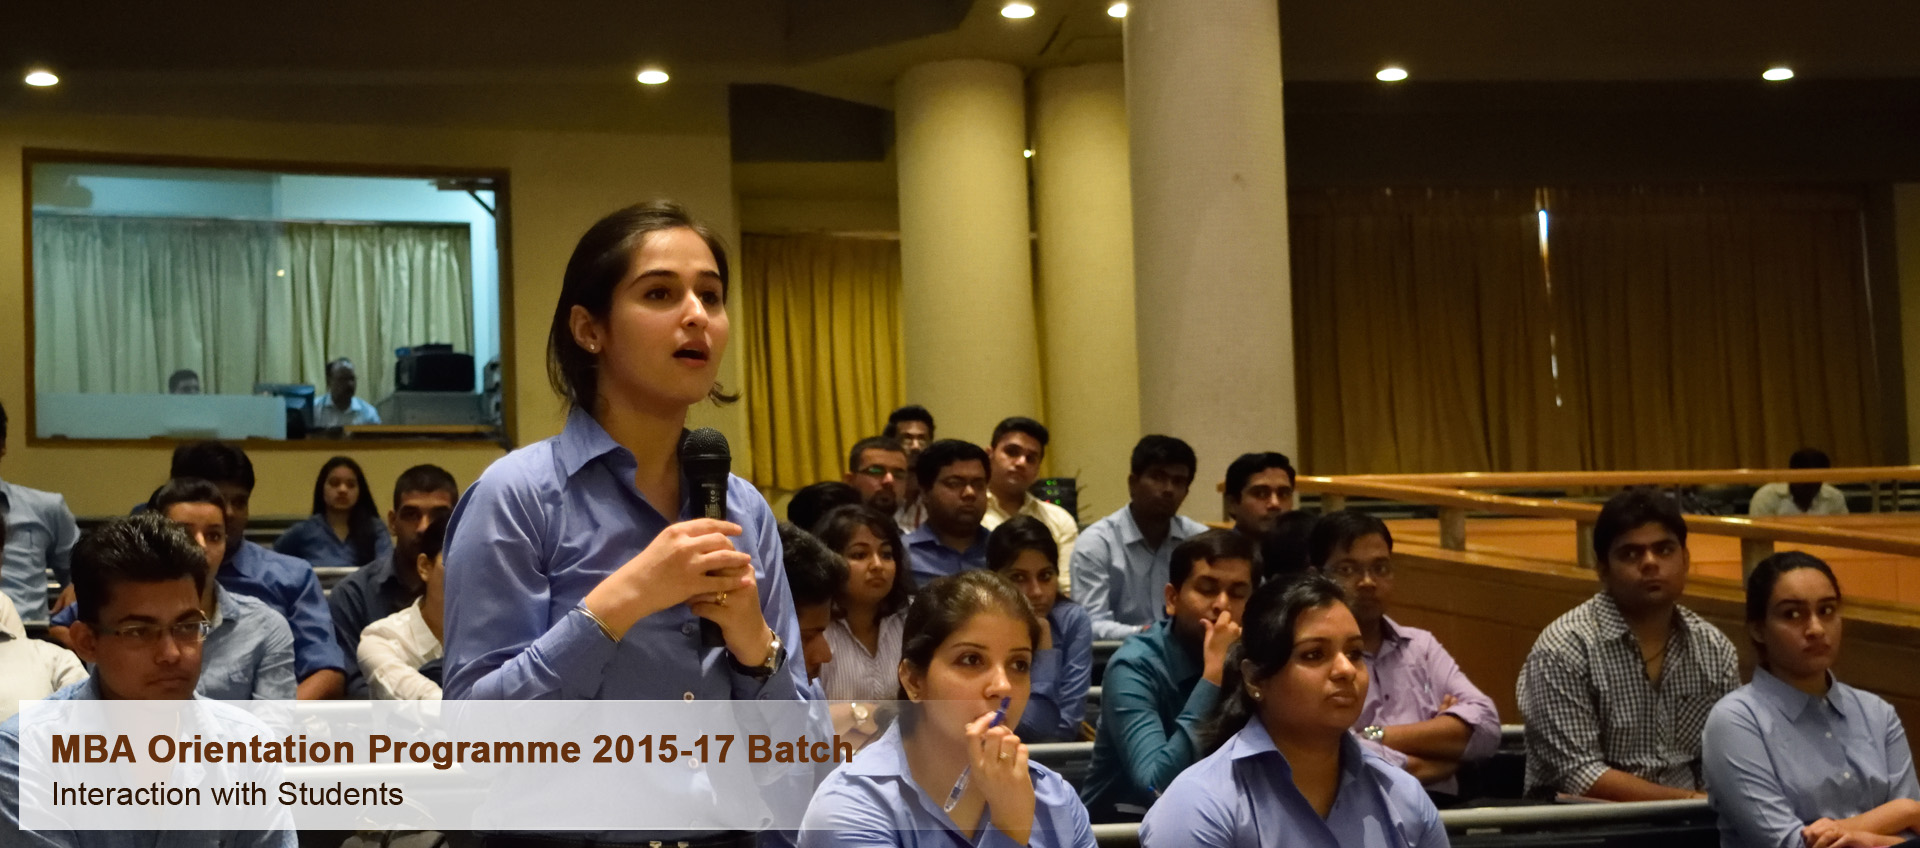 MBA Orientation Programme 2015 - 17 Batch - Interaction with Students